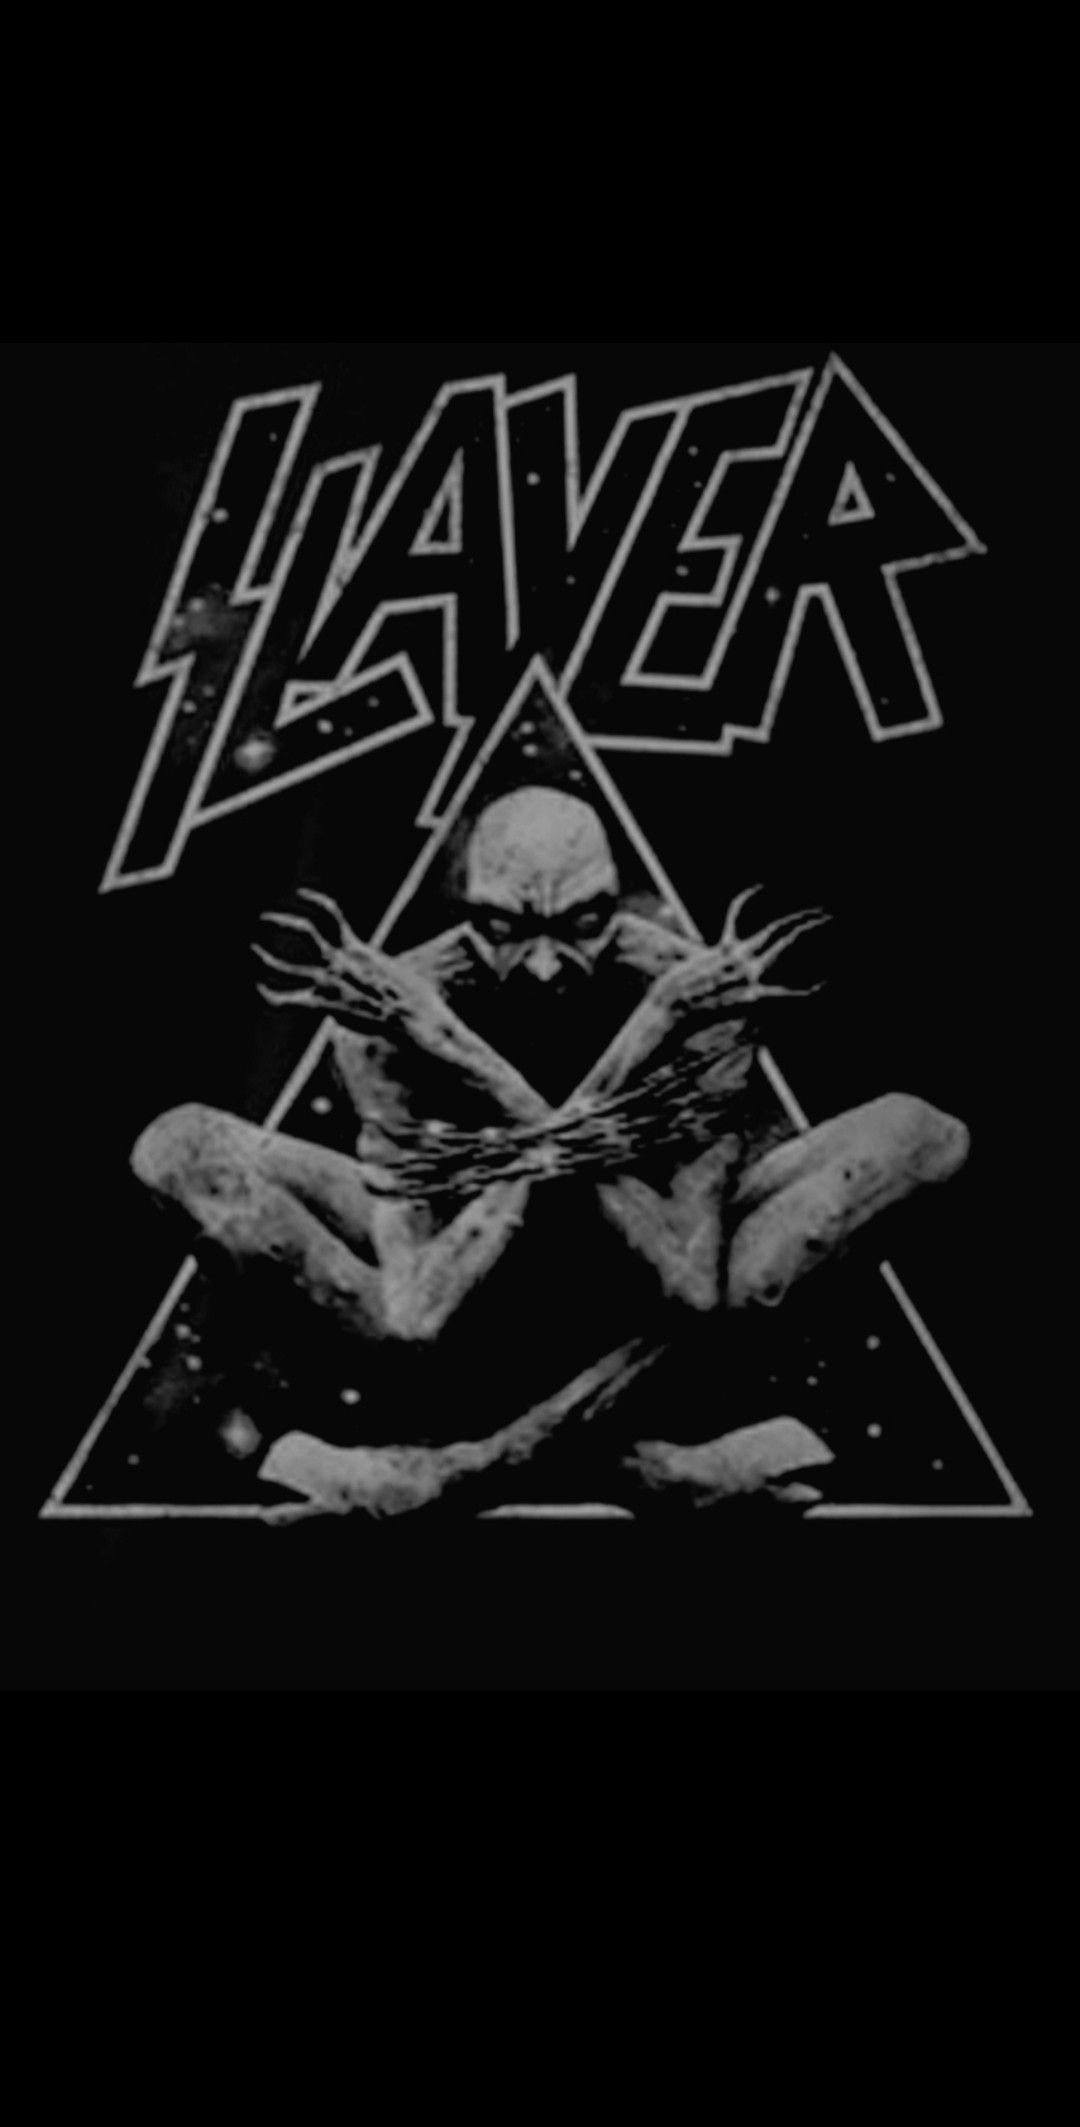 Pin By Kevin On Slayer Heavy Metal Art Slayer Band Band Posters